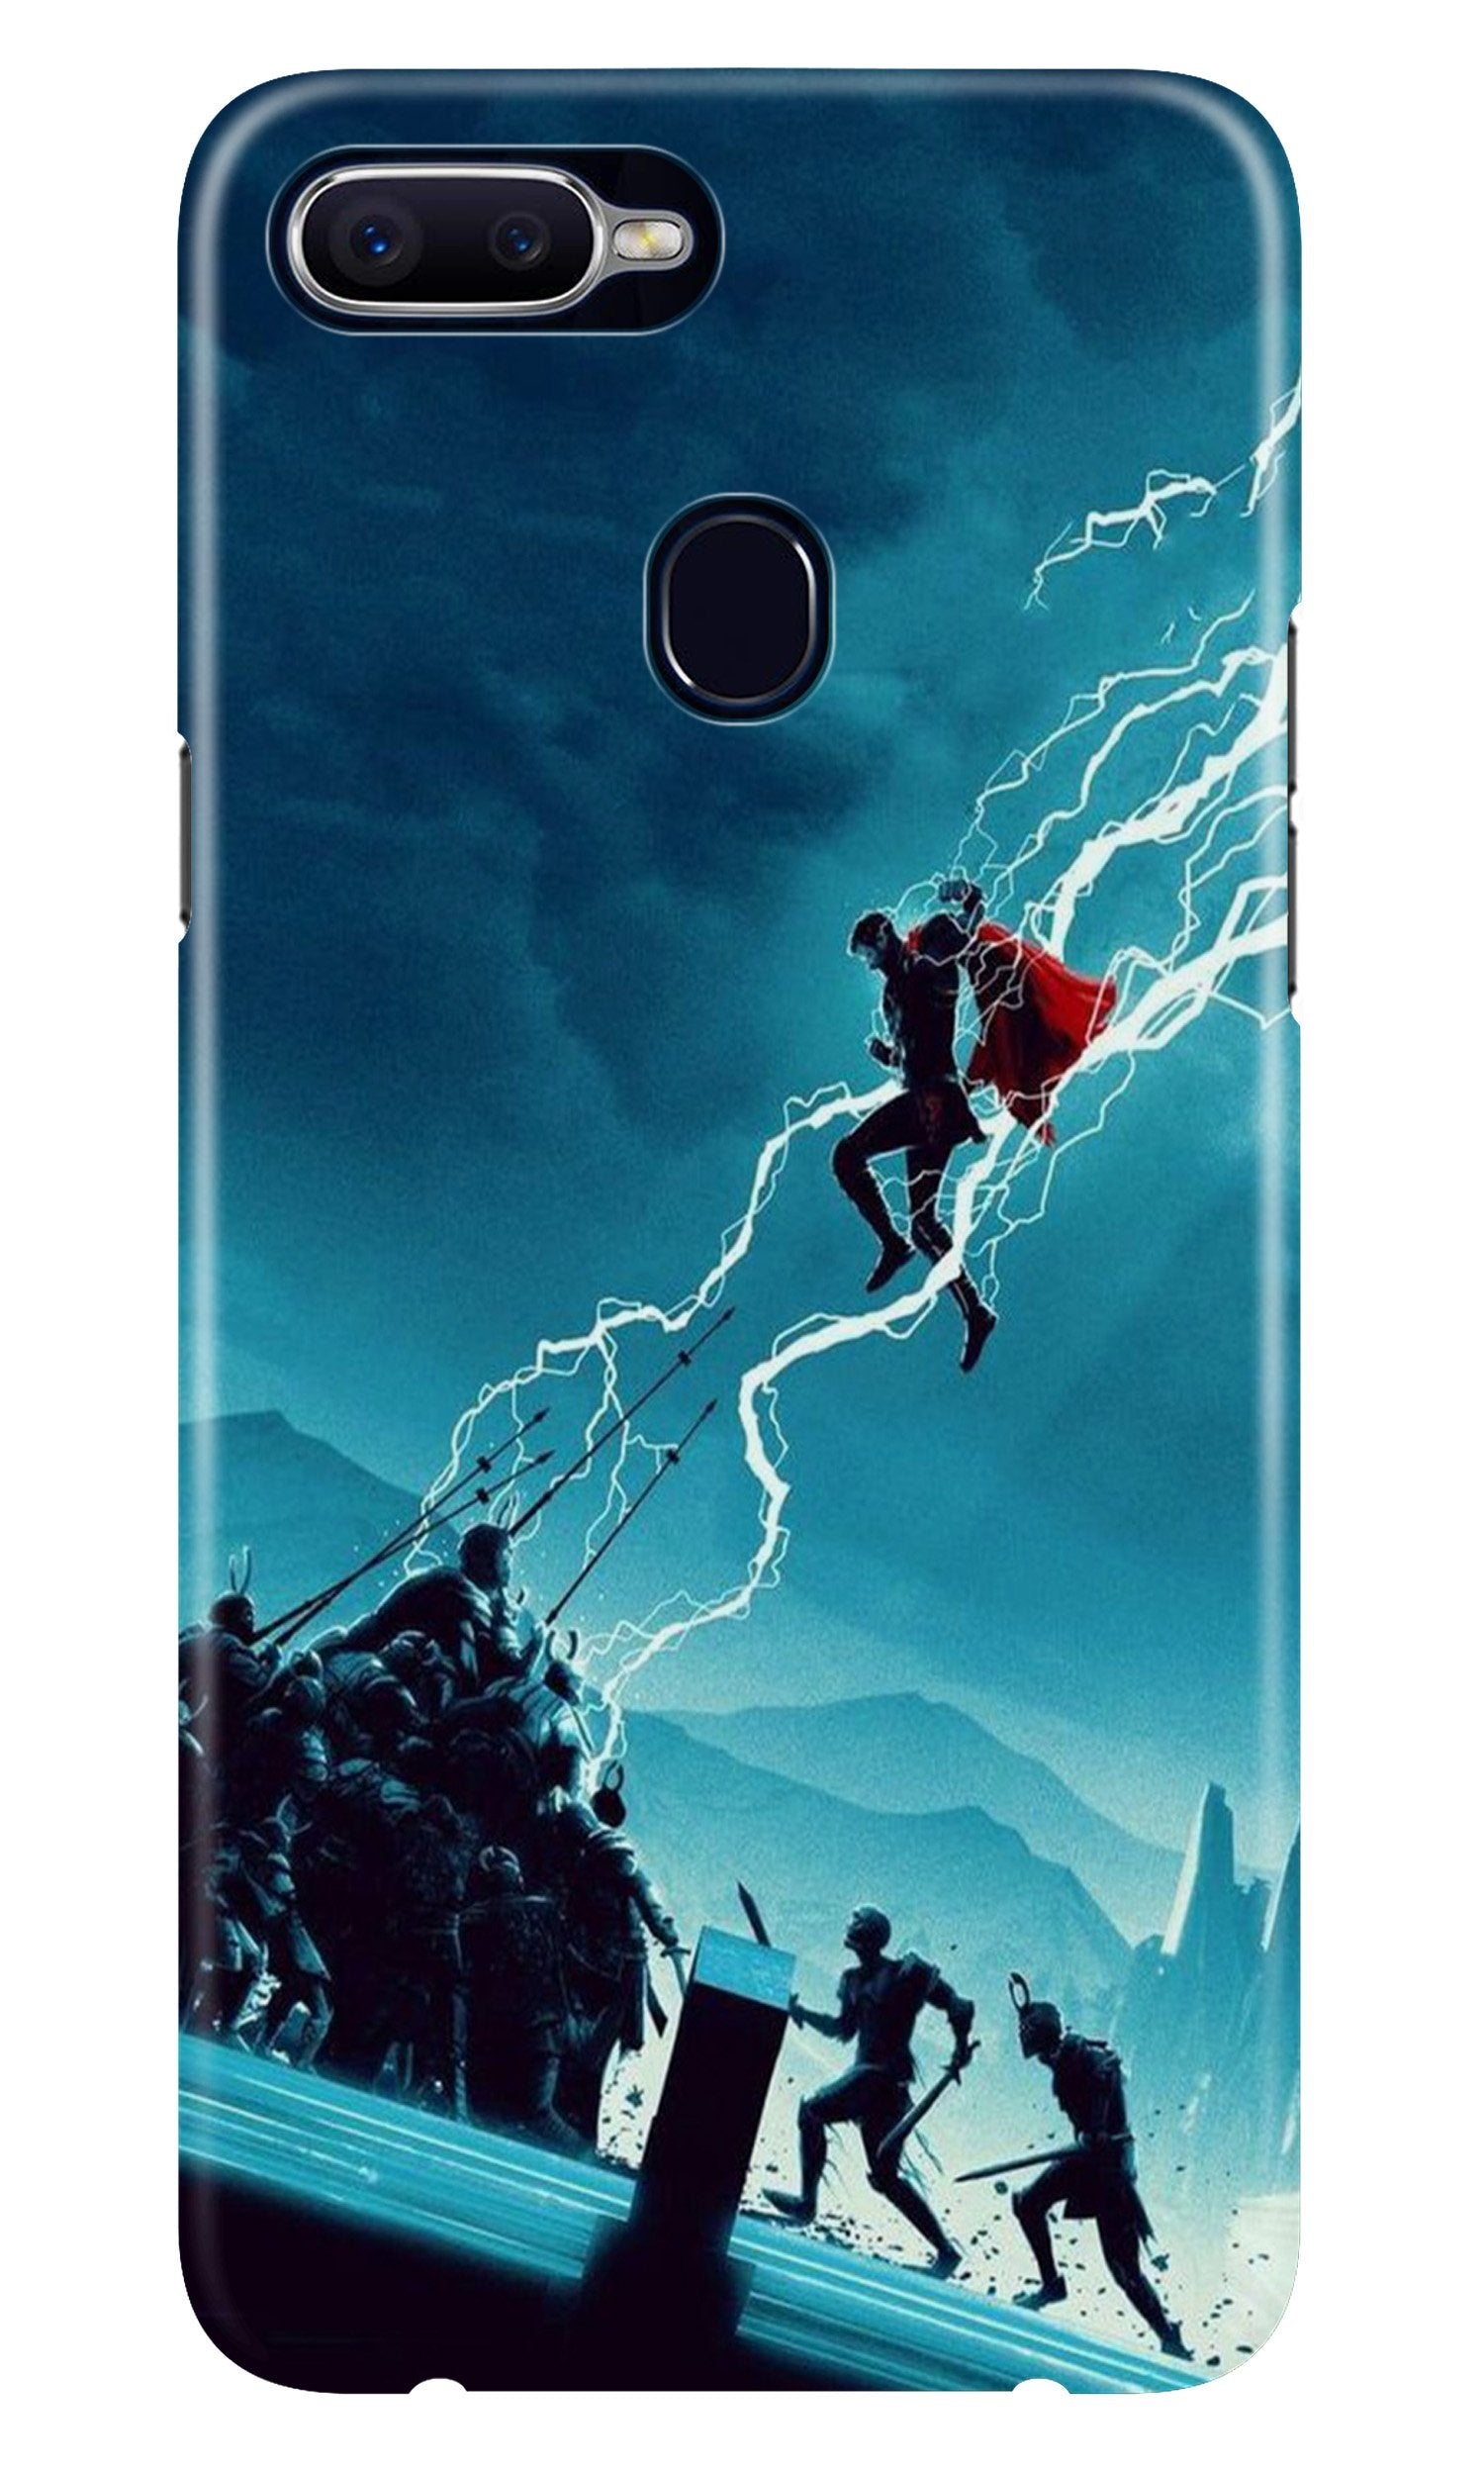 Thor Avengers Case for Oppo F9/F9 Pro (Design No. 243)